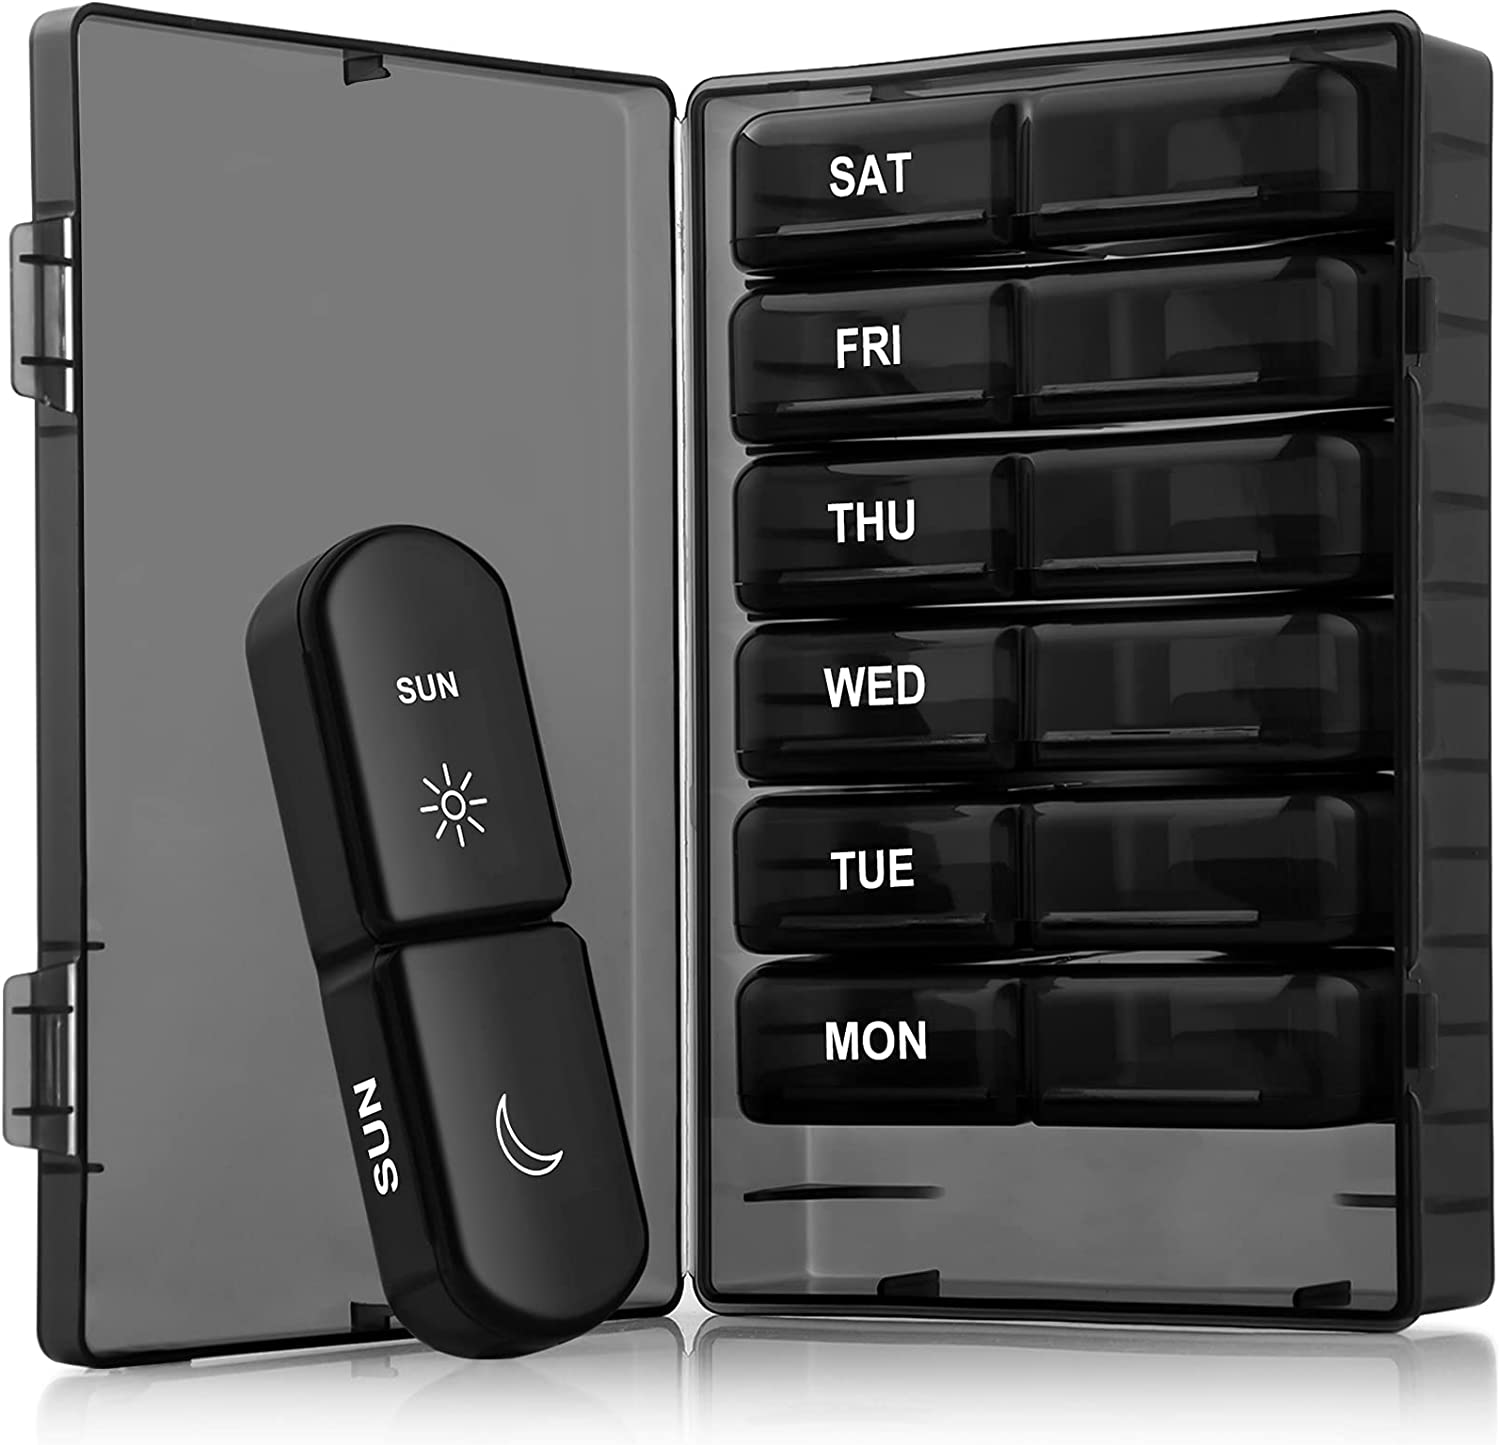 Large Weekly Pill Orgaizer 2 Times A Day, Gelibo Portable Day/Night Pill Box Case Medicine Organizer for Vitamin, Fish Oil, Pills, Supplements-Arthritis Friendly